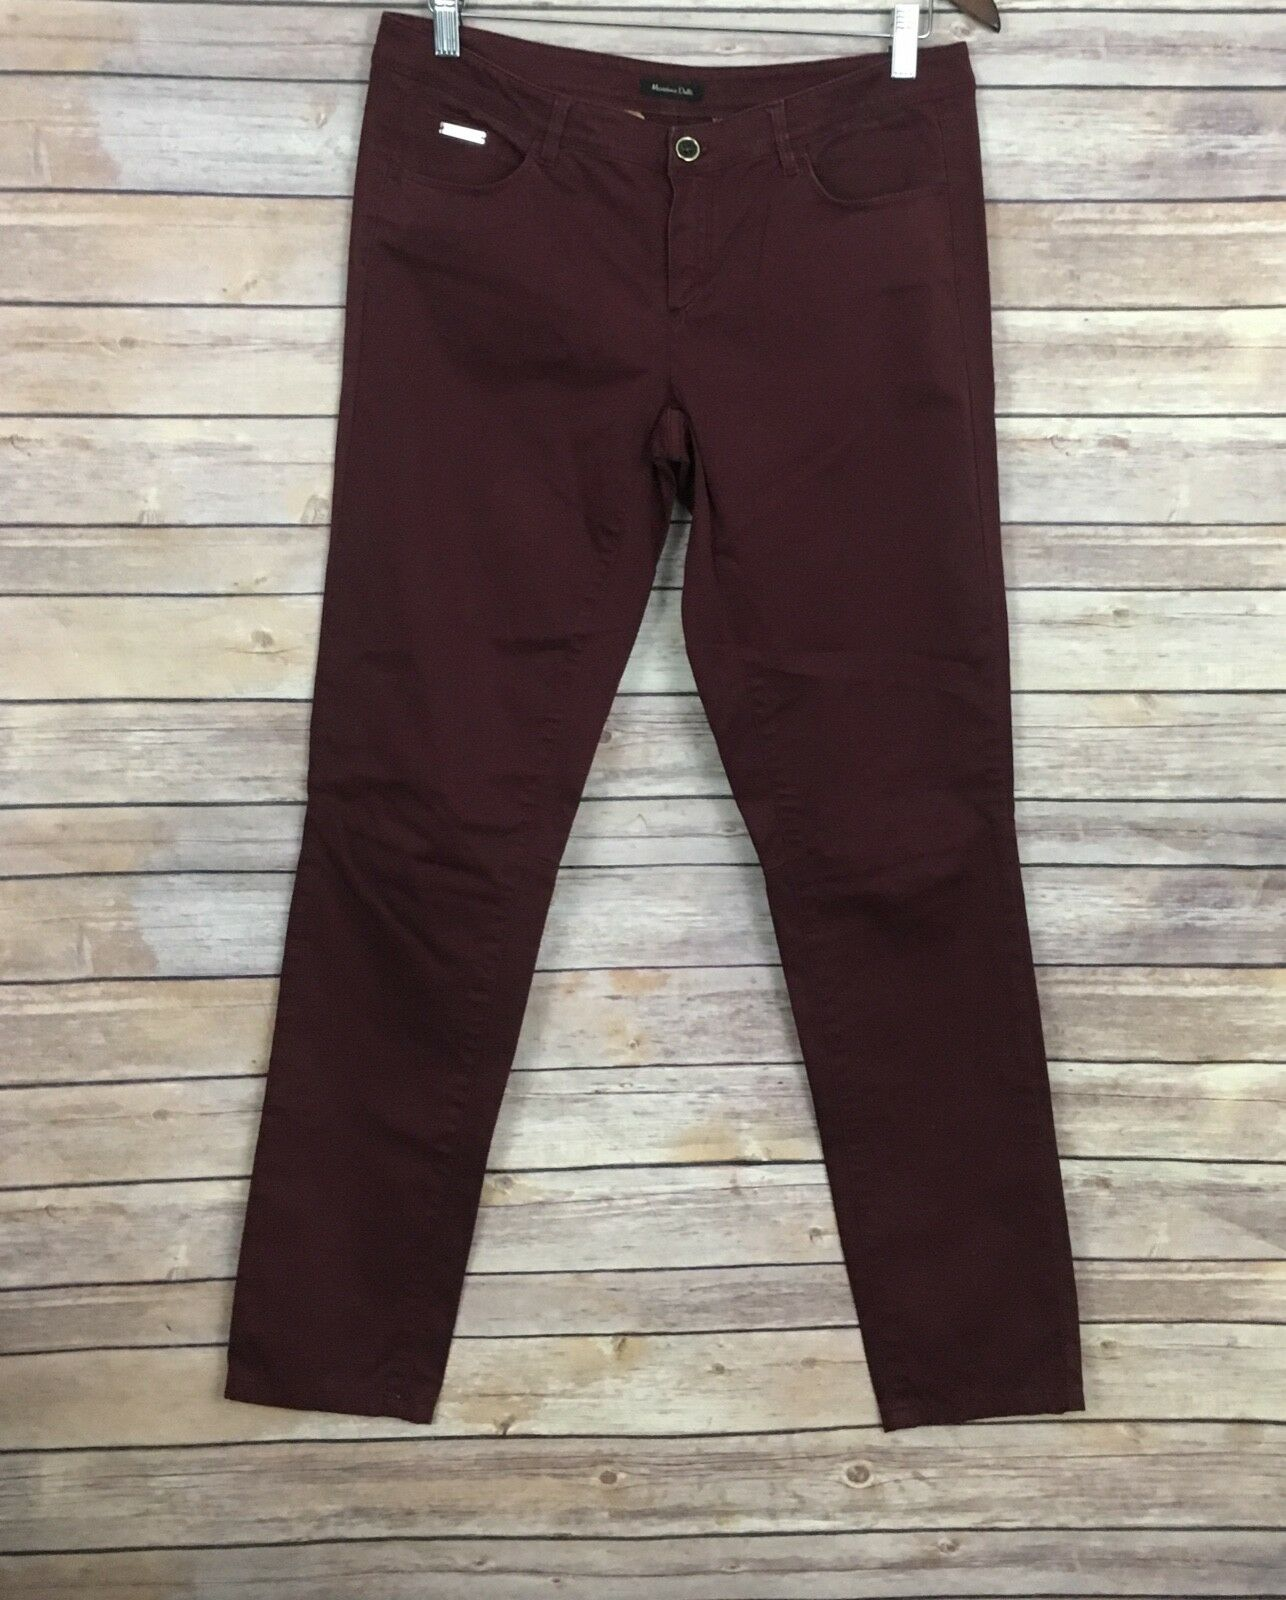 Massimo Dutti Slim Fit Pants (Size US8)